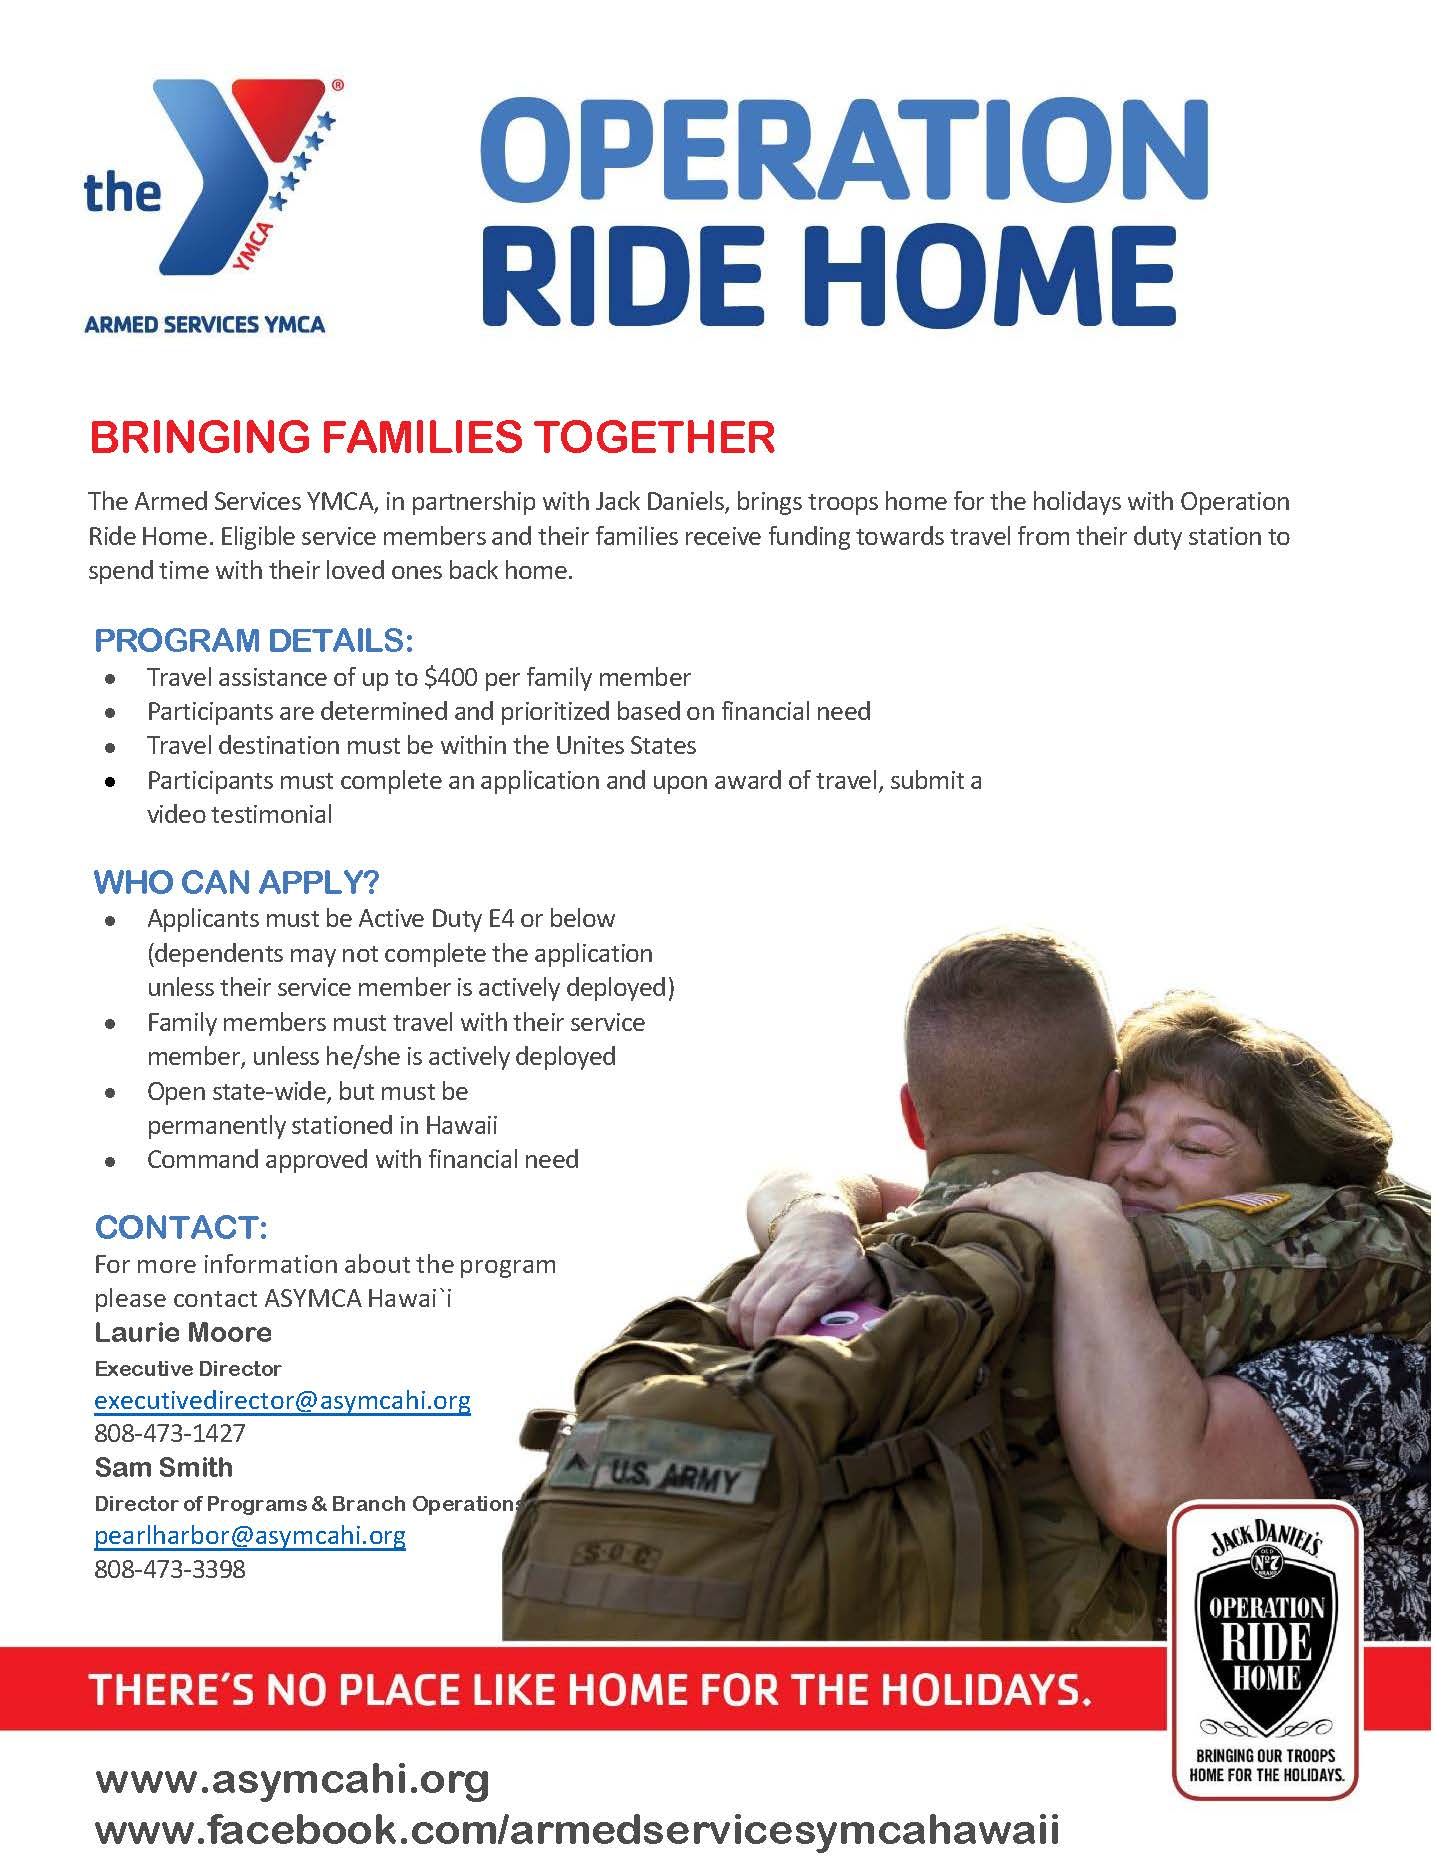 Op Ride Home Flier ASYMCA Hawaii-1